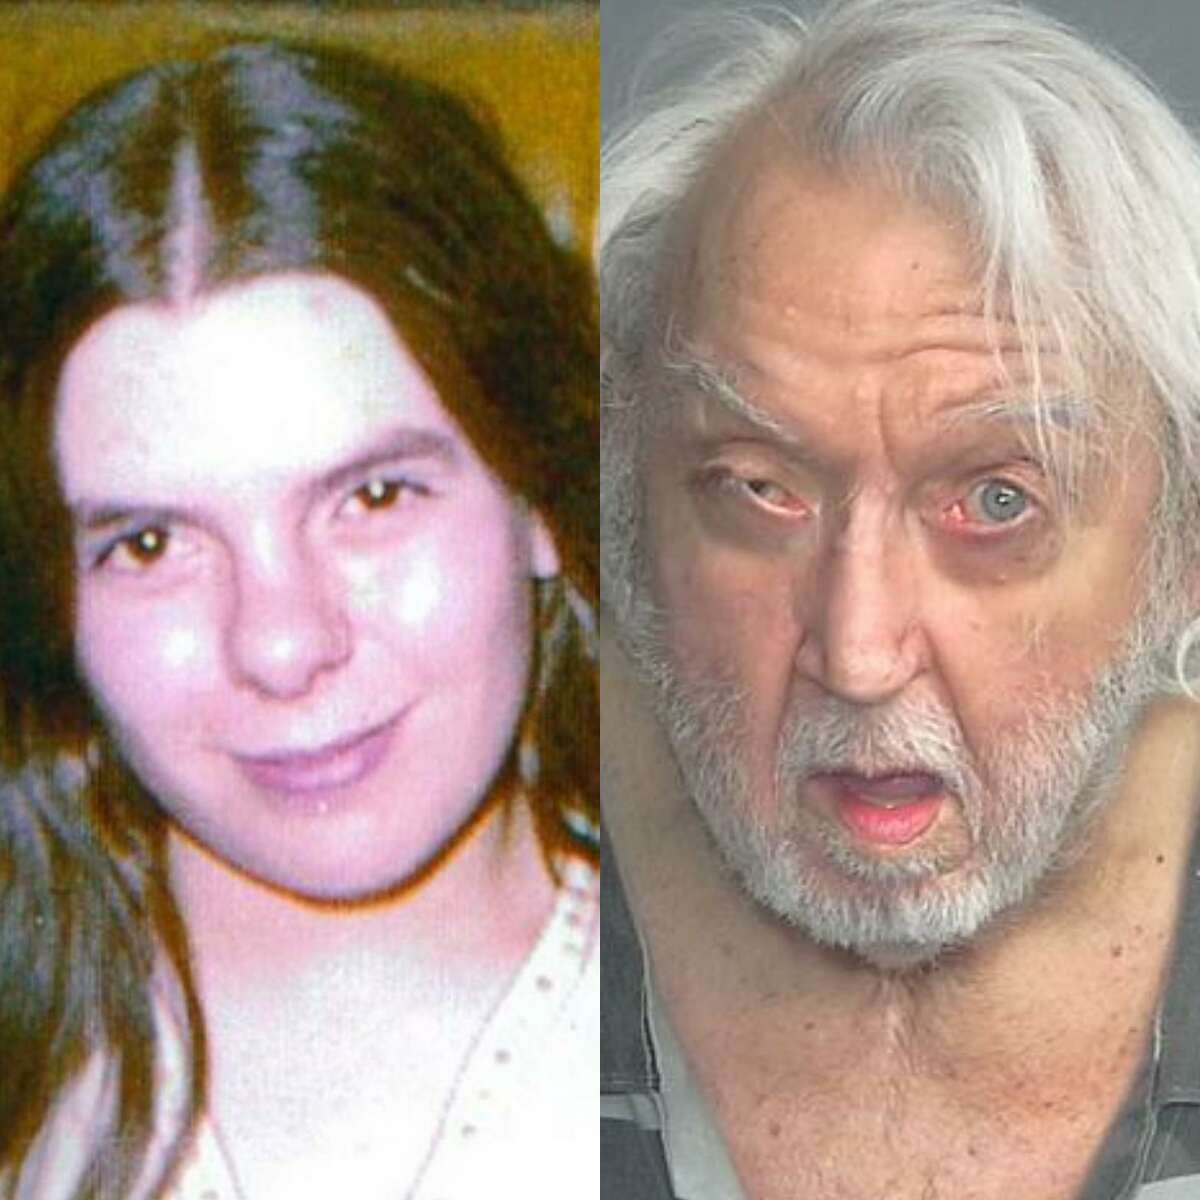 Thomas Elvin Darnell, 75, of Kansas City, Kan., was being charged with capital murder in the 1983 death of Laurie Marie Purchase, a missing woman from Houston. Darnell died earlier this week while in custody in Montgomery County.